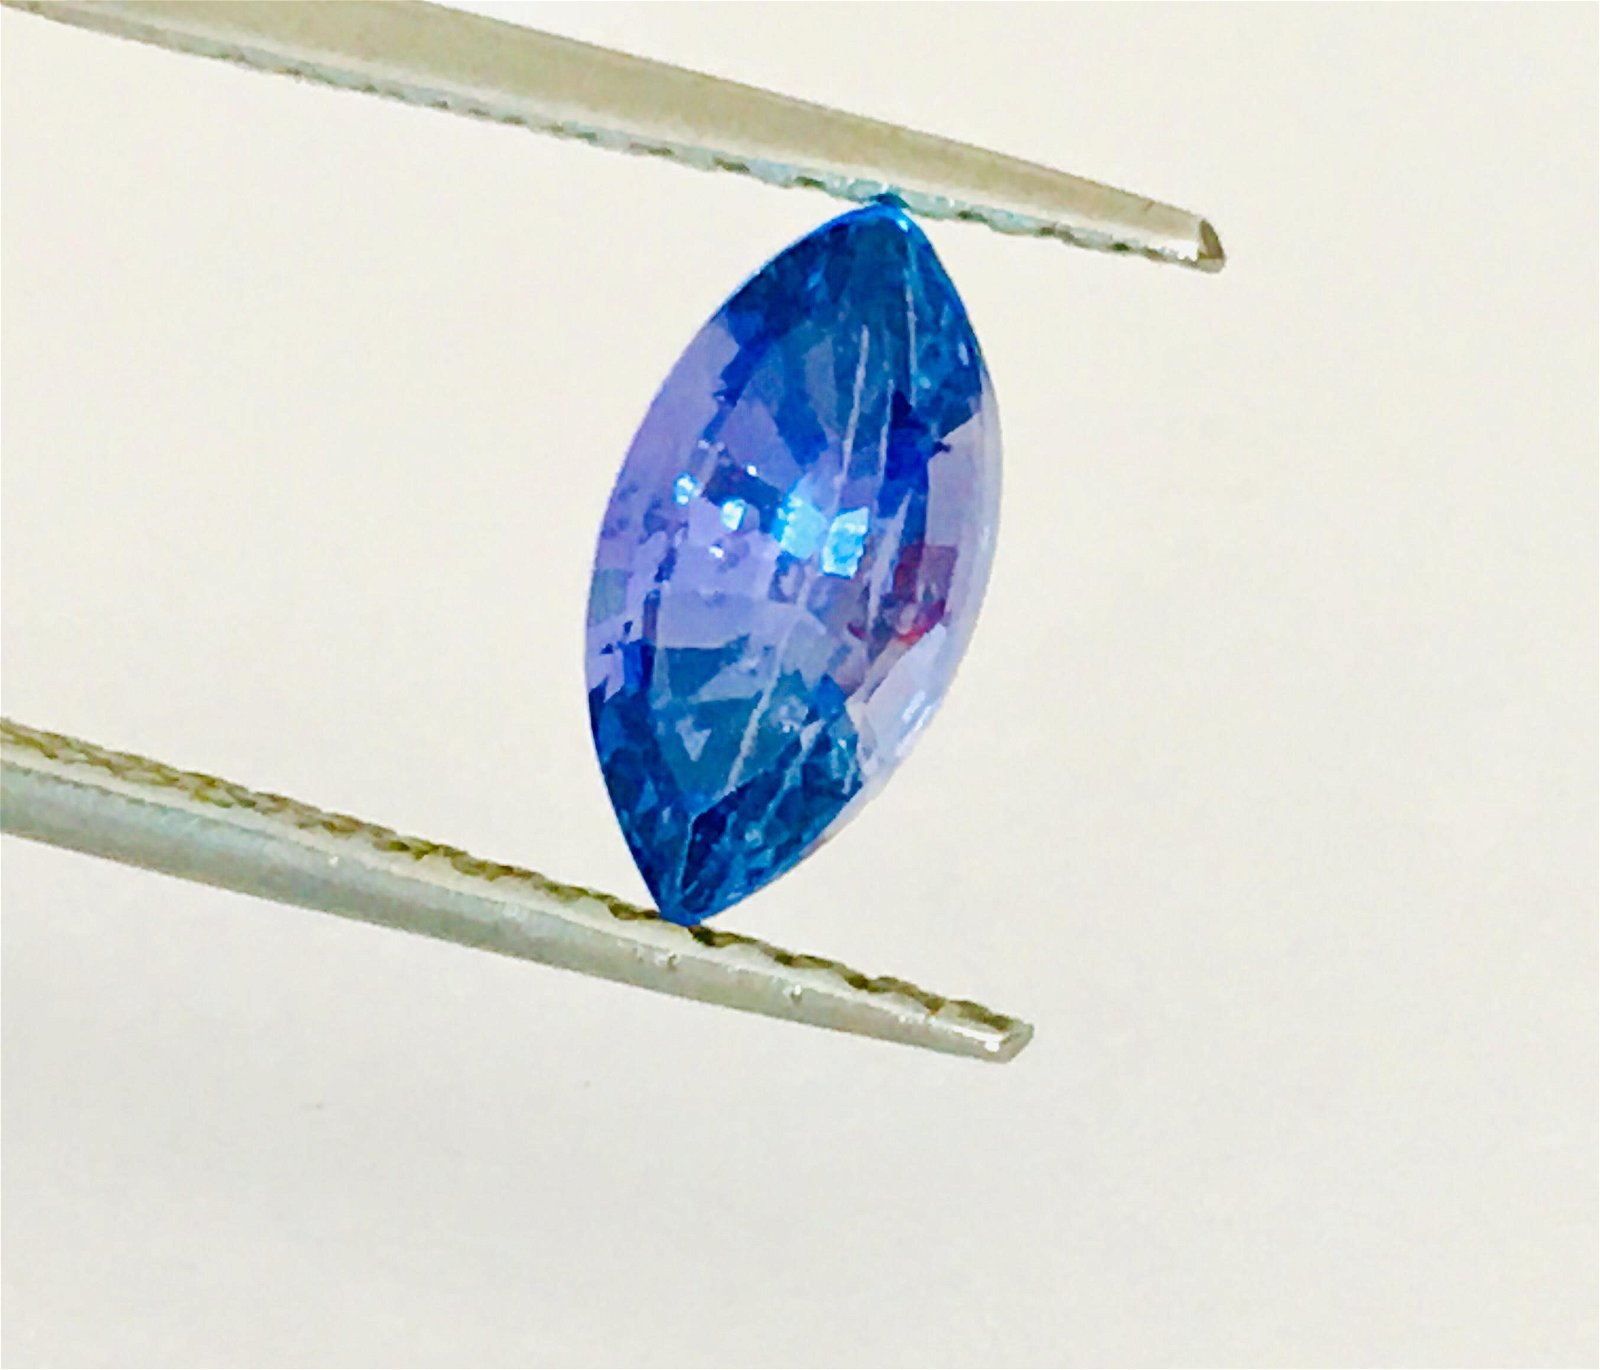 100% Natural AAA 1.25 Carat Loose Tanzanite Gemstone